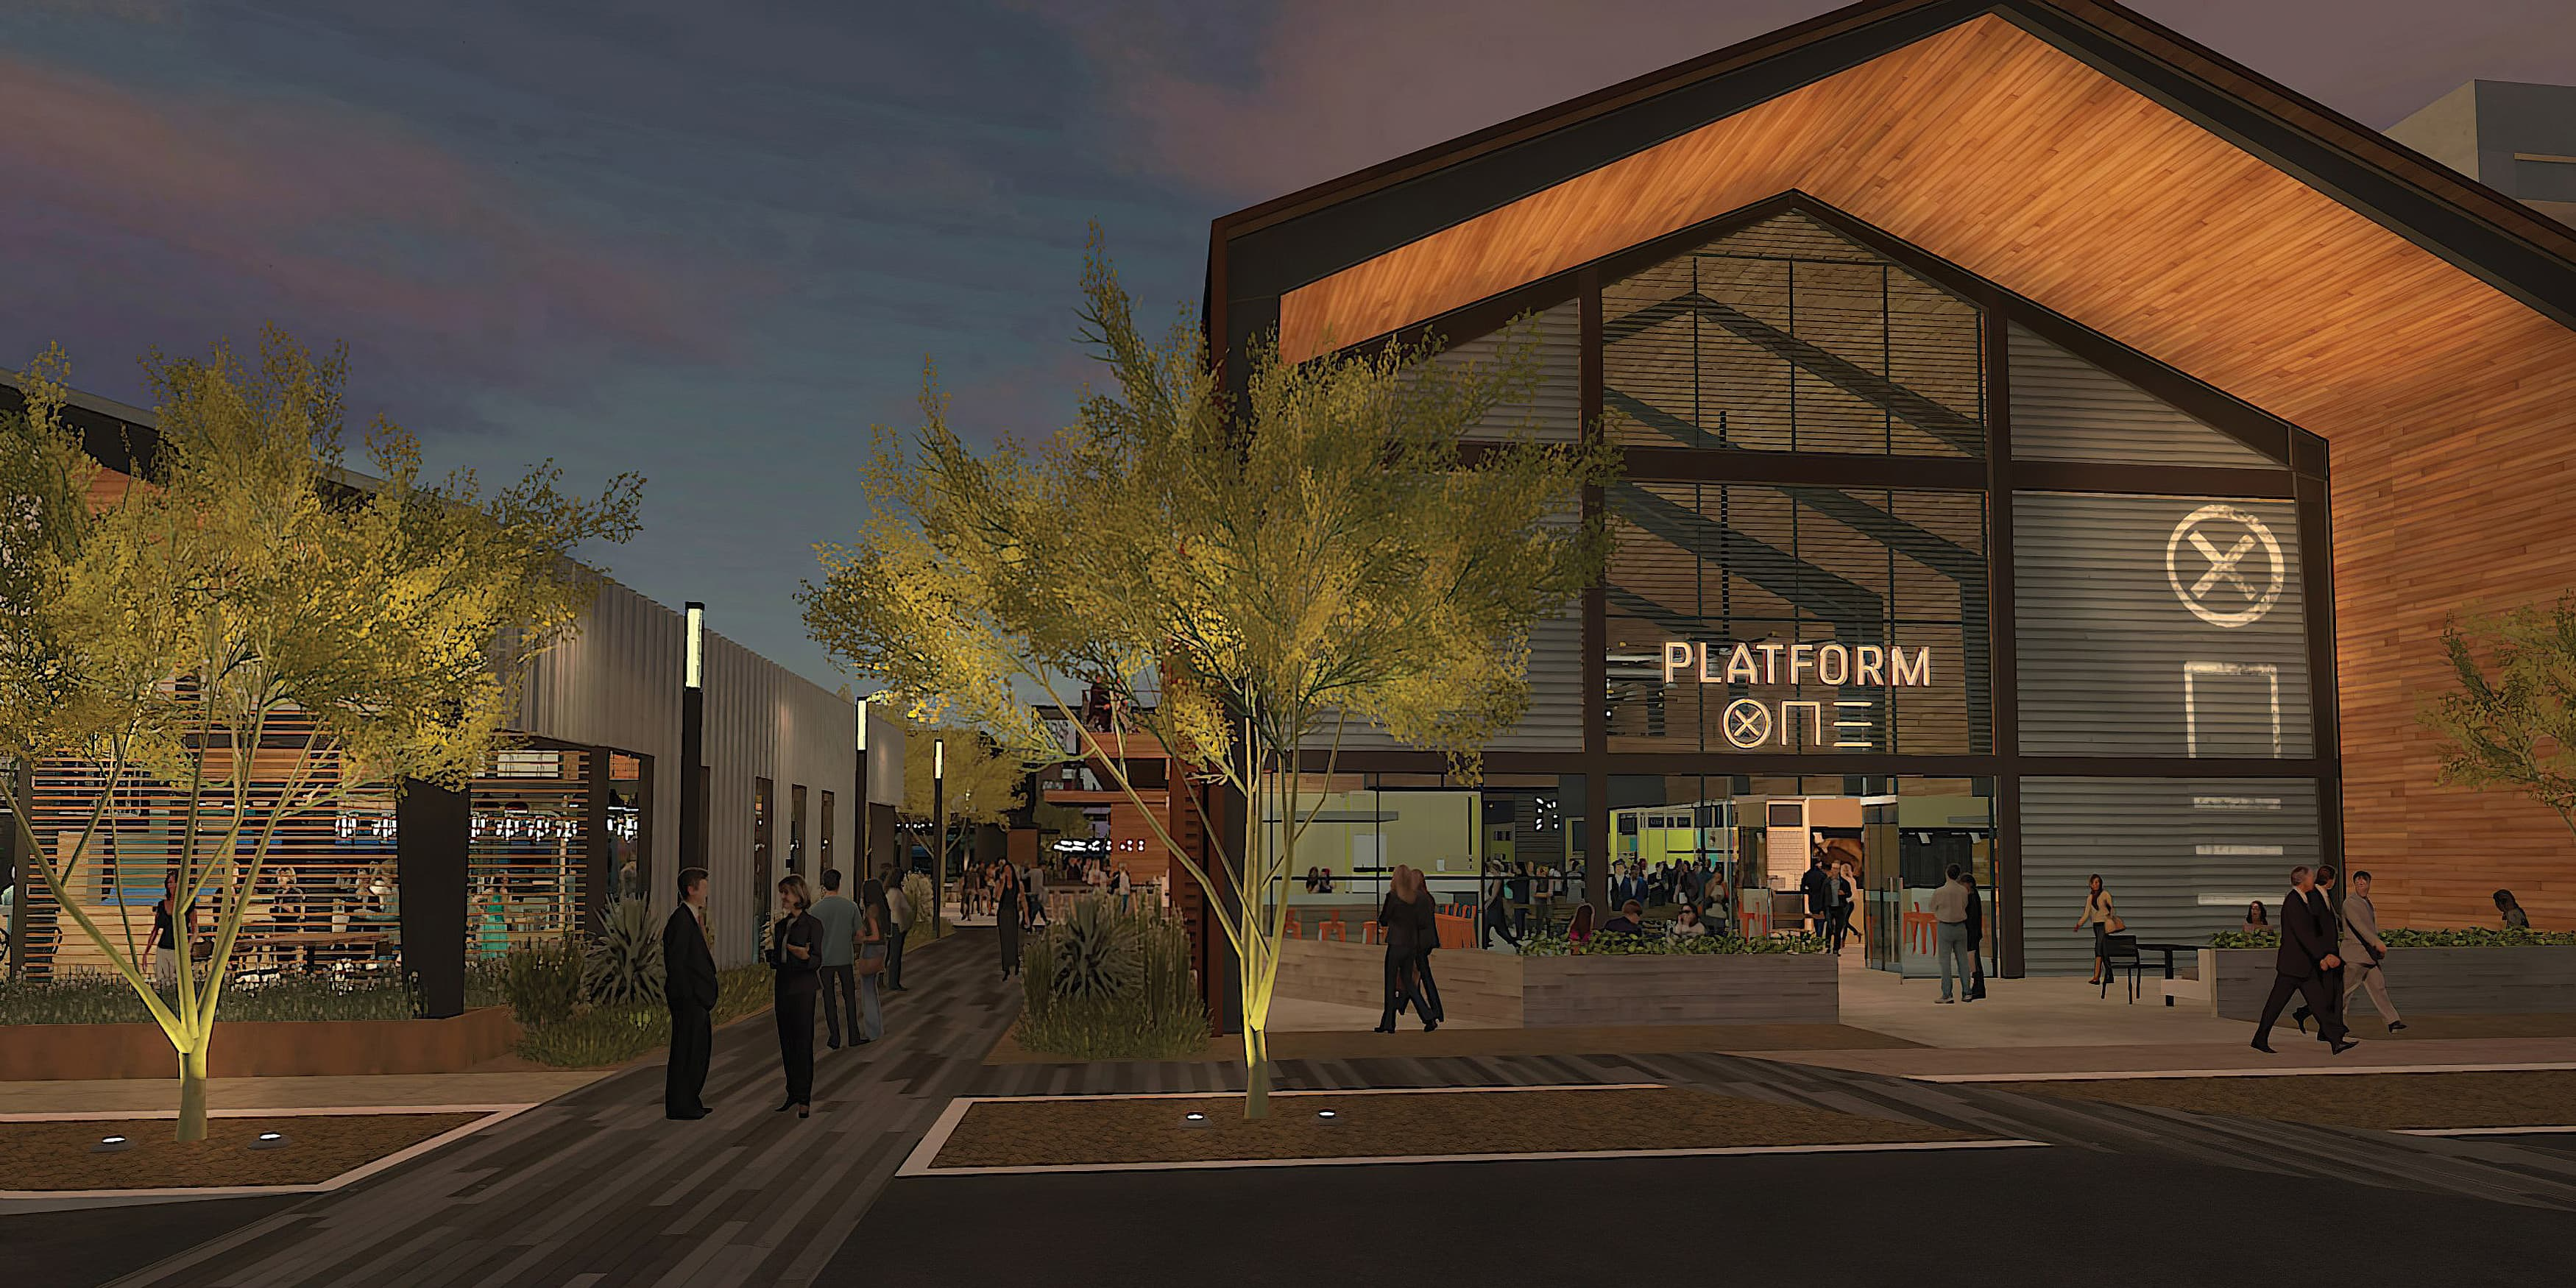 Architectural rendering of Platform One at Uncommons, a neighborhood food hall in Las Vegas, Nevada. RSM Design worked to develop the name, identity system and brand guidelines.